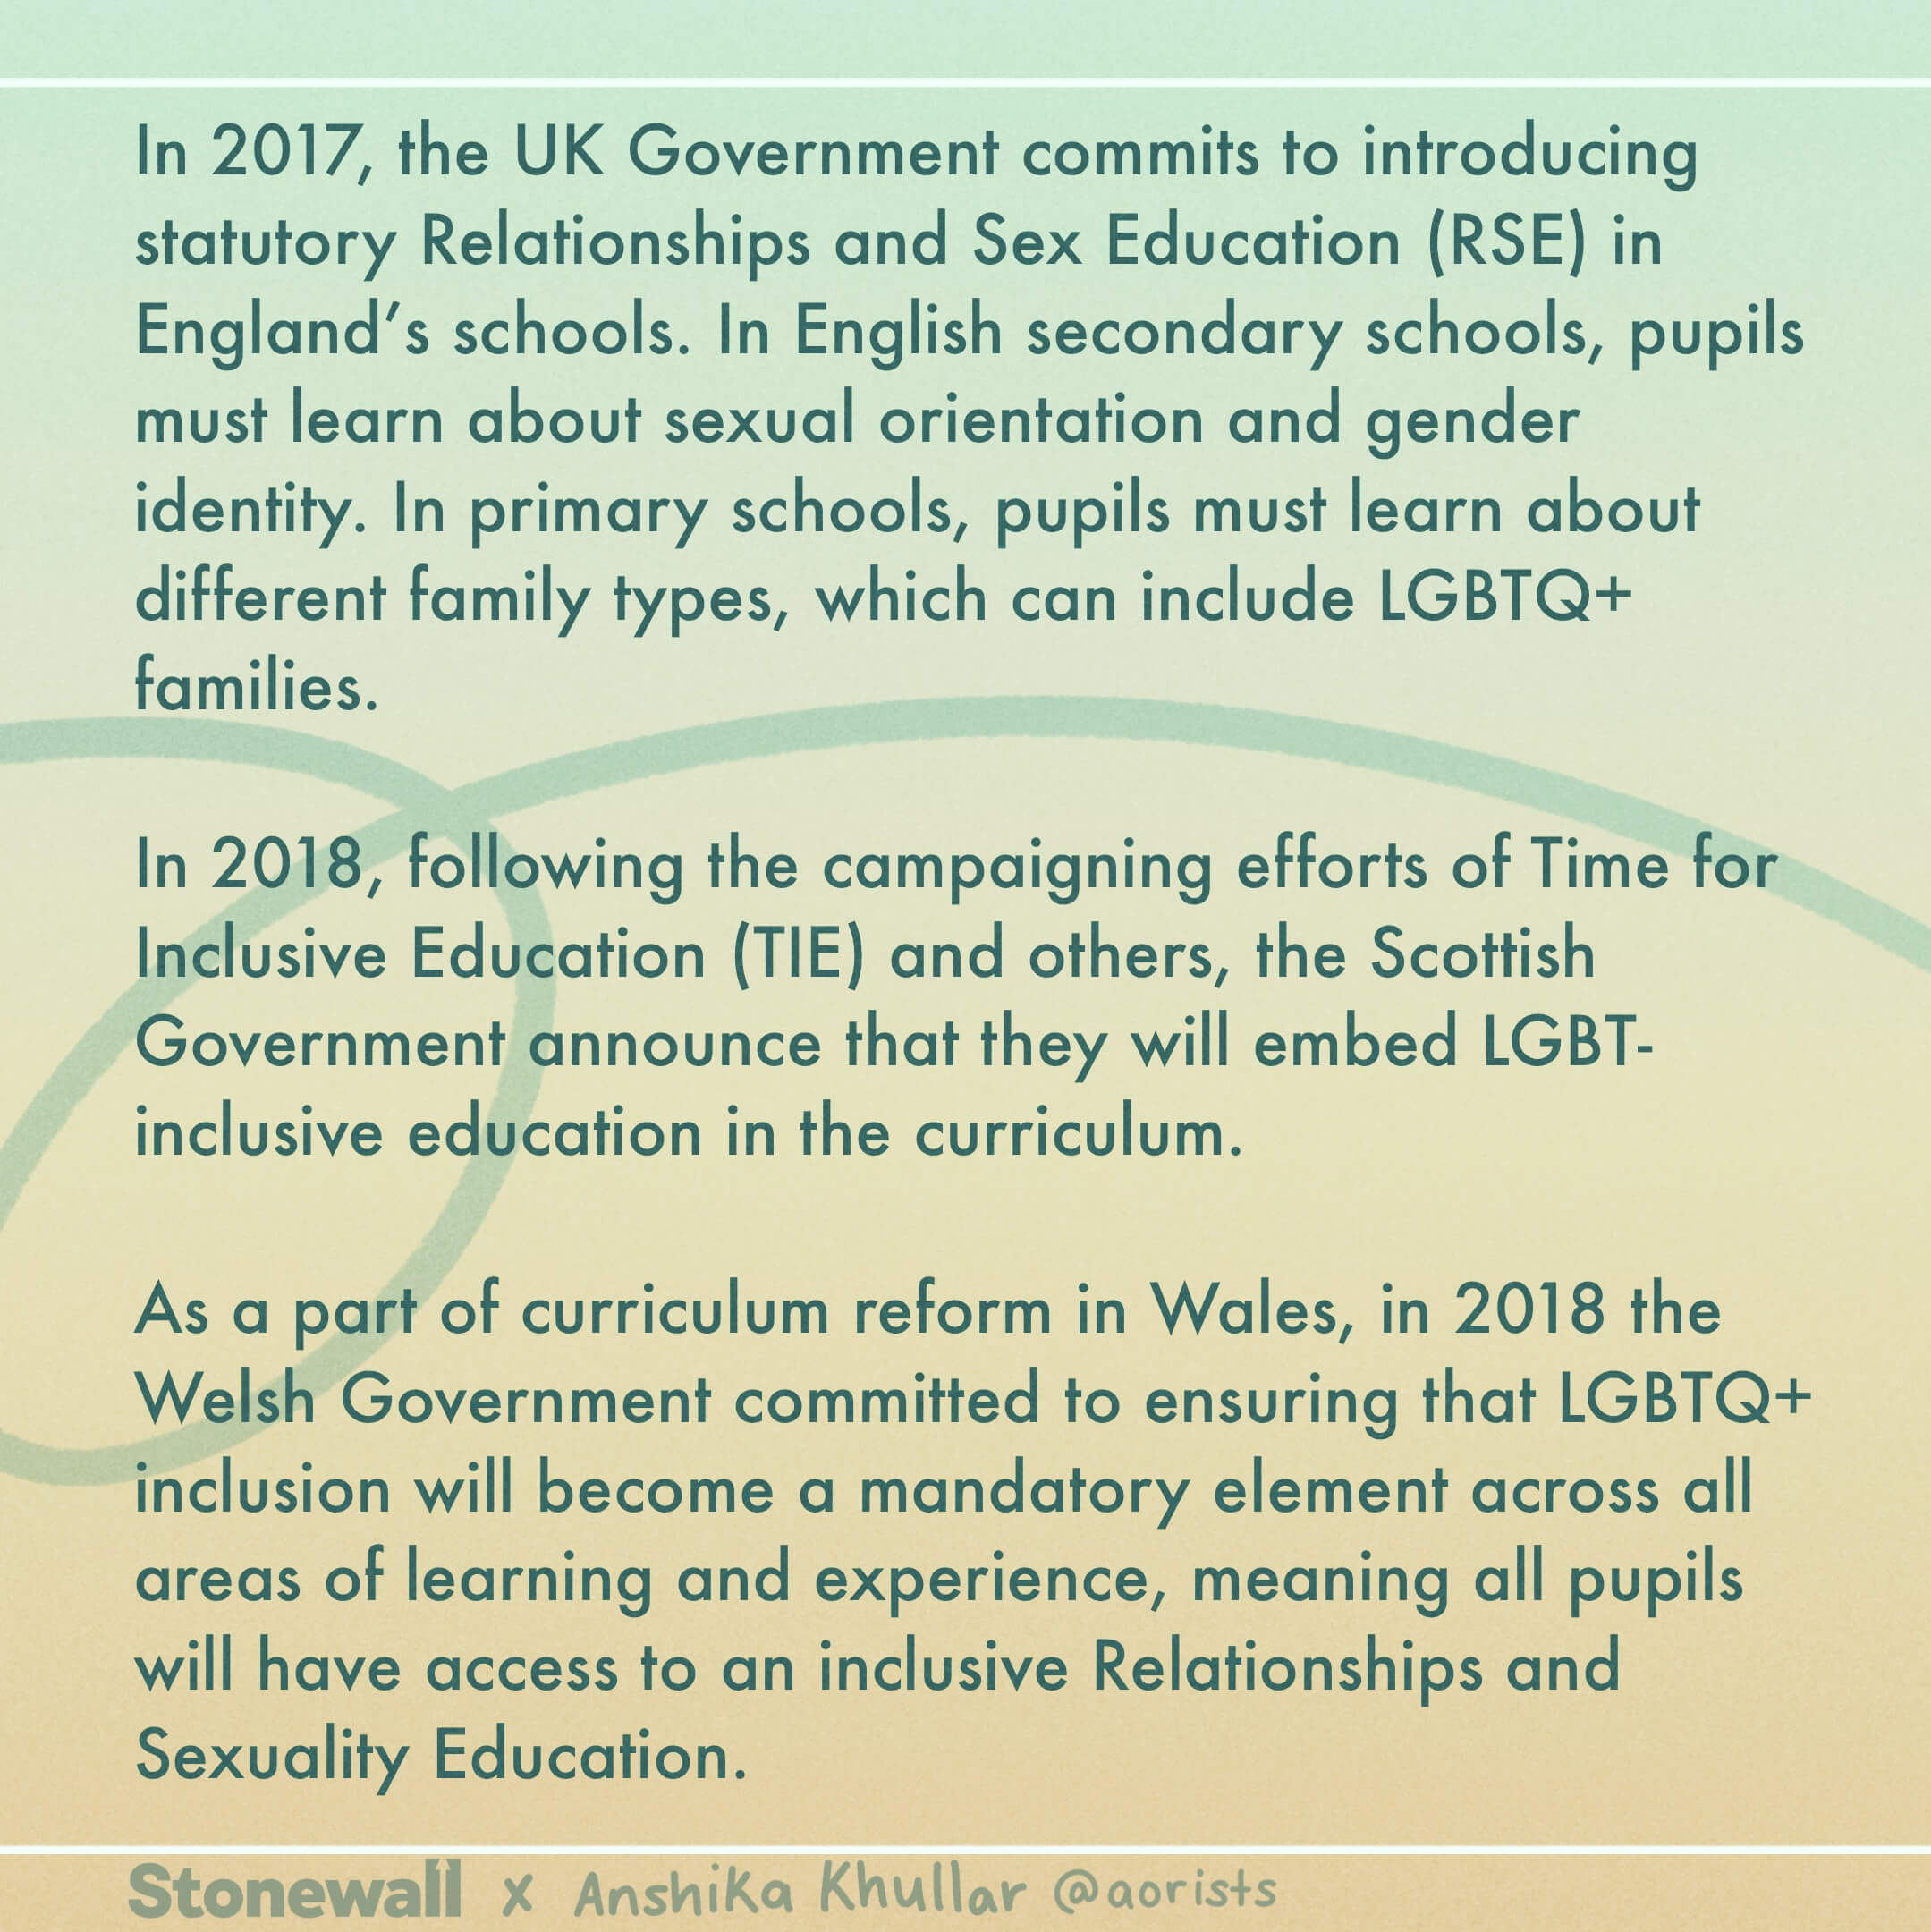 In 2017, the UK Government commits to introducing statutory Relationships and Sex Education (RSE) in England's schools. In English secondary schools, pupils must learn about sexual orientation and gender identity. In primary schools, pupils must learn about different family types, which can include LGBTQ+ families. In 2018, following the campaigning efforts of Time for Inclusive Education (TIE) and others, the Scottish Government announce that they will embed LGBT-inclusive education in the curriculum. As a part of curriculum reform in Wales, in 2018 the Welsh Government committed to ensuring that LGBTQ+ inclusion will become a mandatory element across all areas of learning and experience, meaning all pupils will have access to an inclusive Relationships and Sexuality Education.